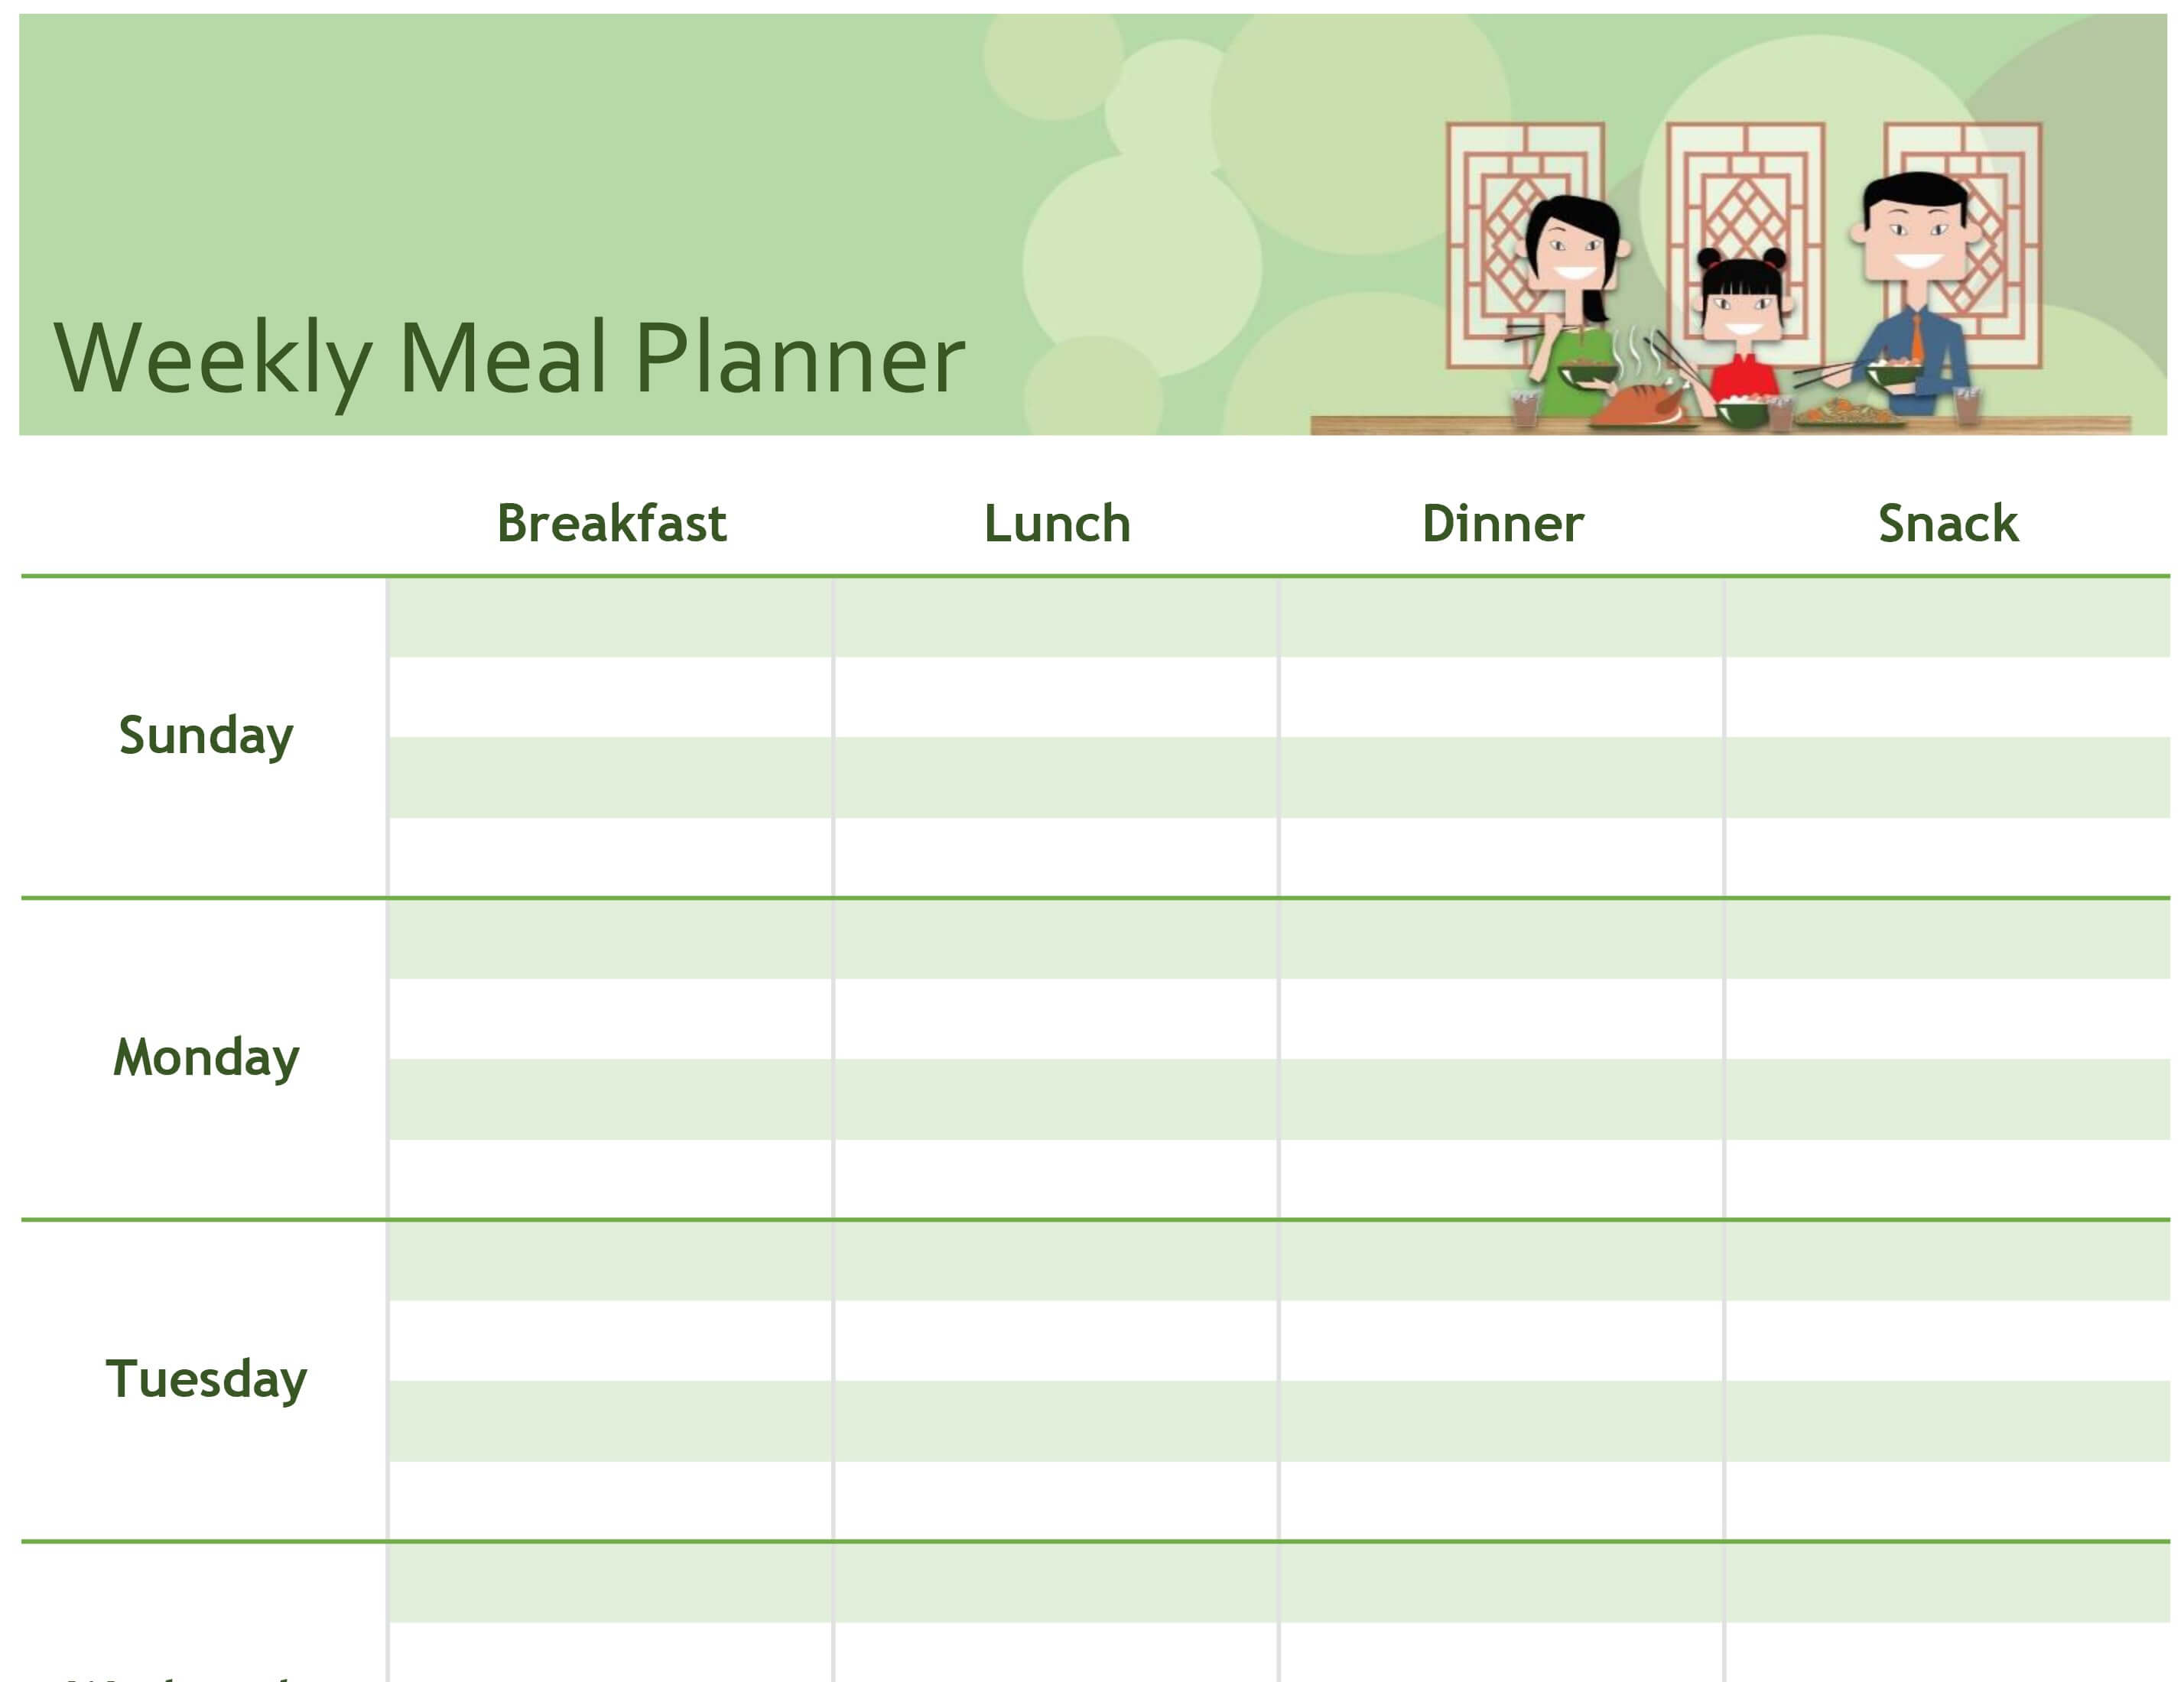 Menu Planning Template Word - Atlantaauctionco with Weekly Meal Planner Template Word